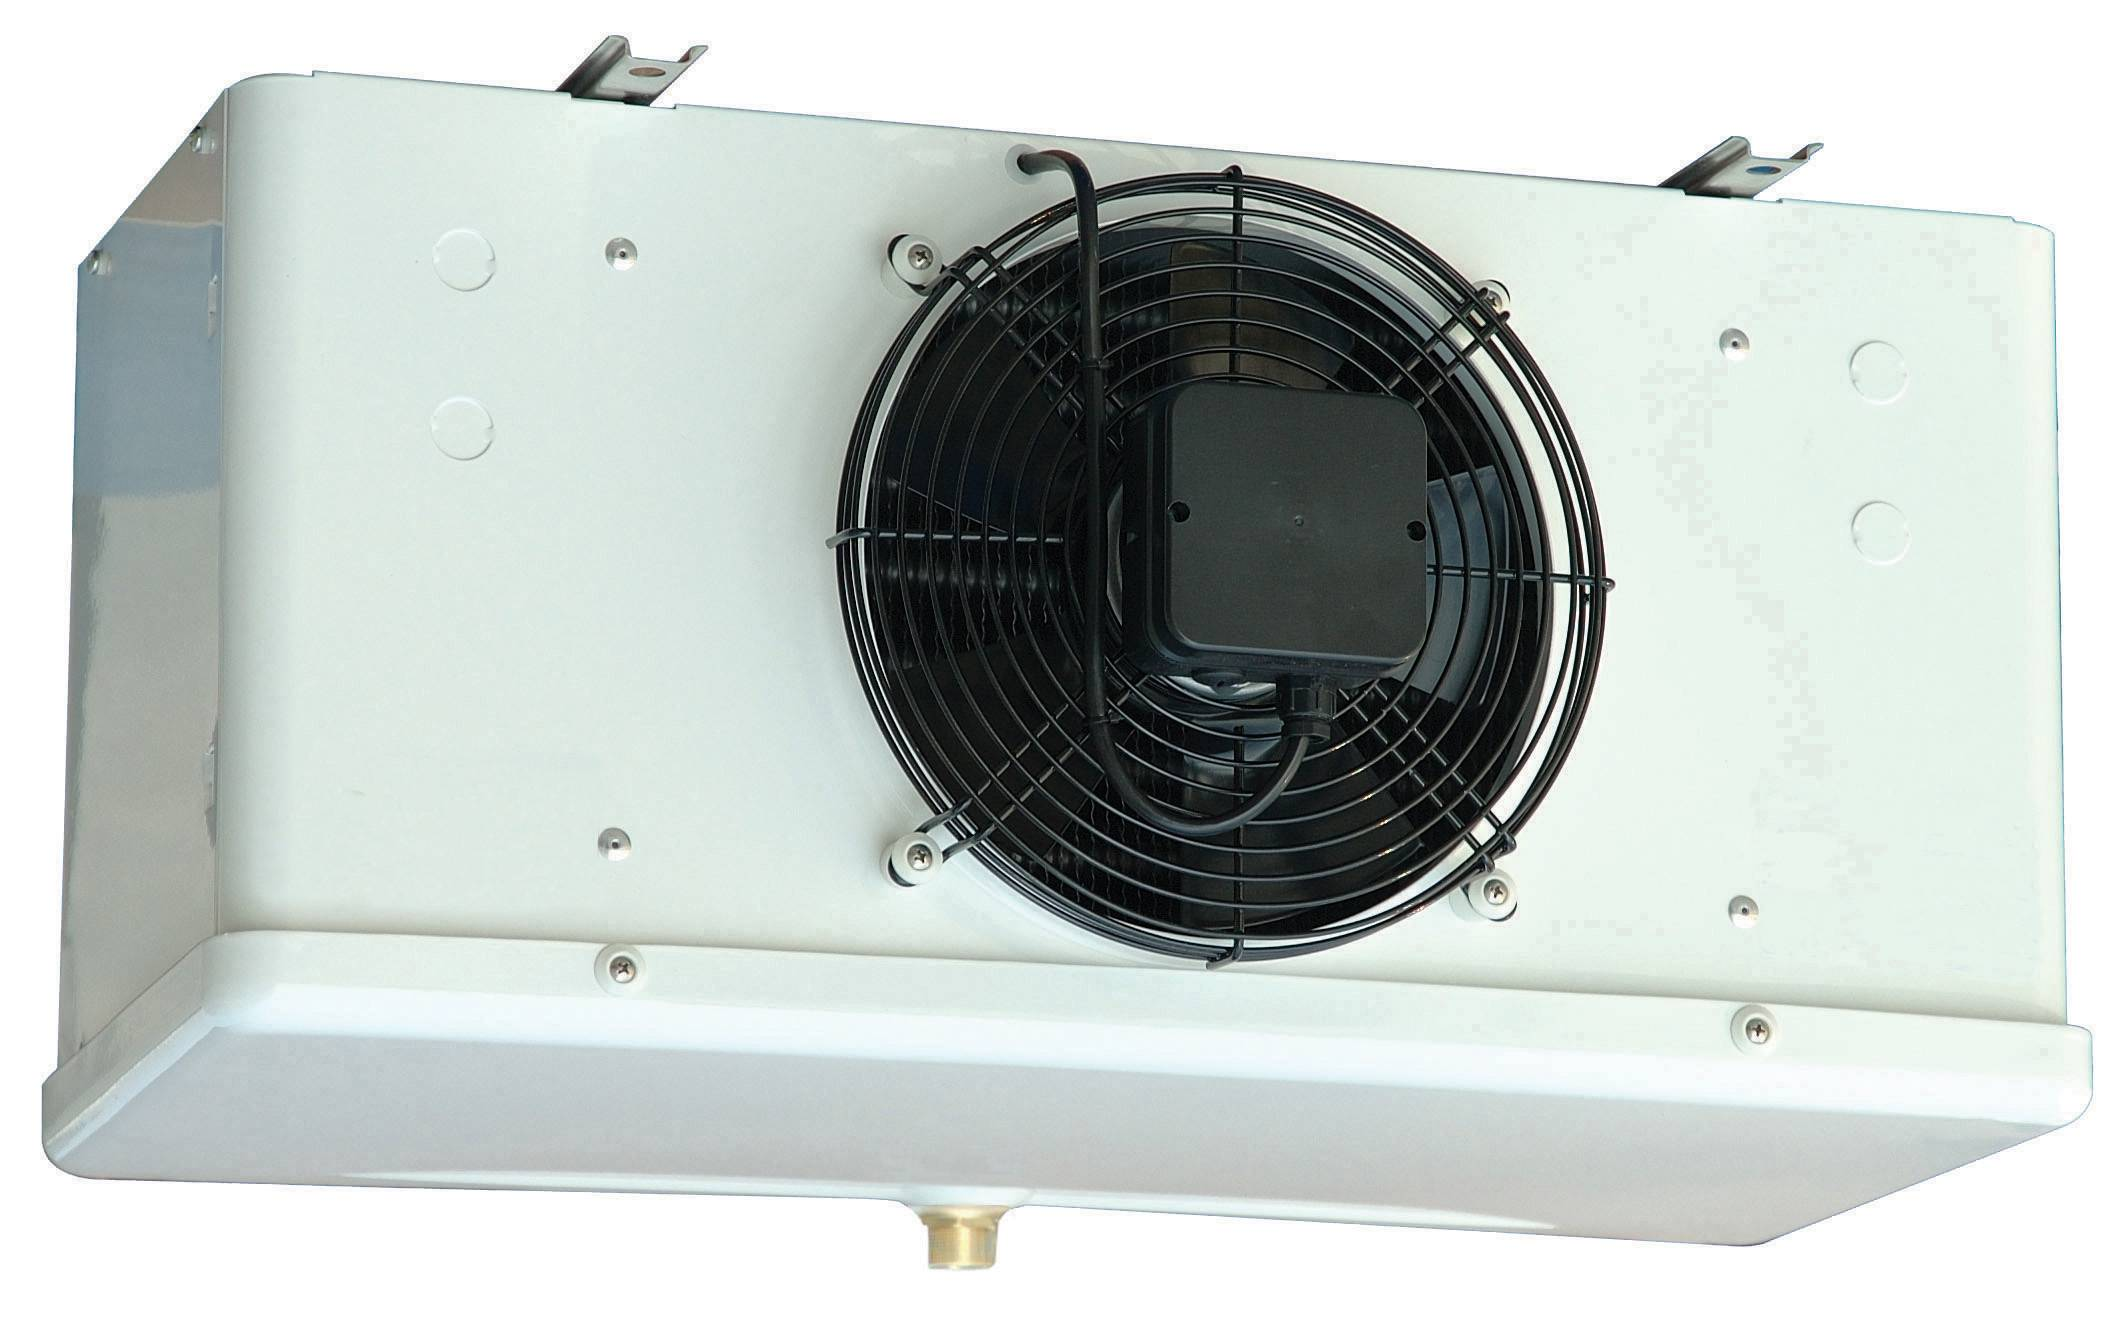 REA series forced convection air coolers